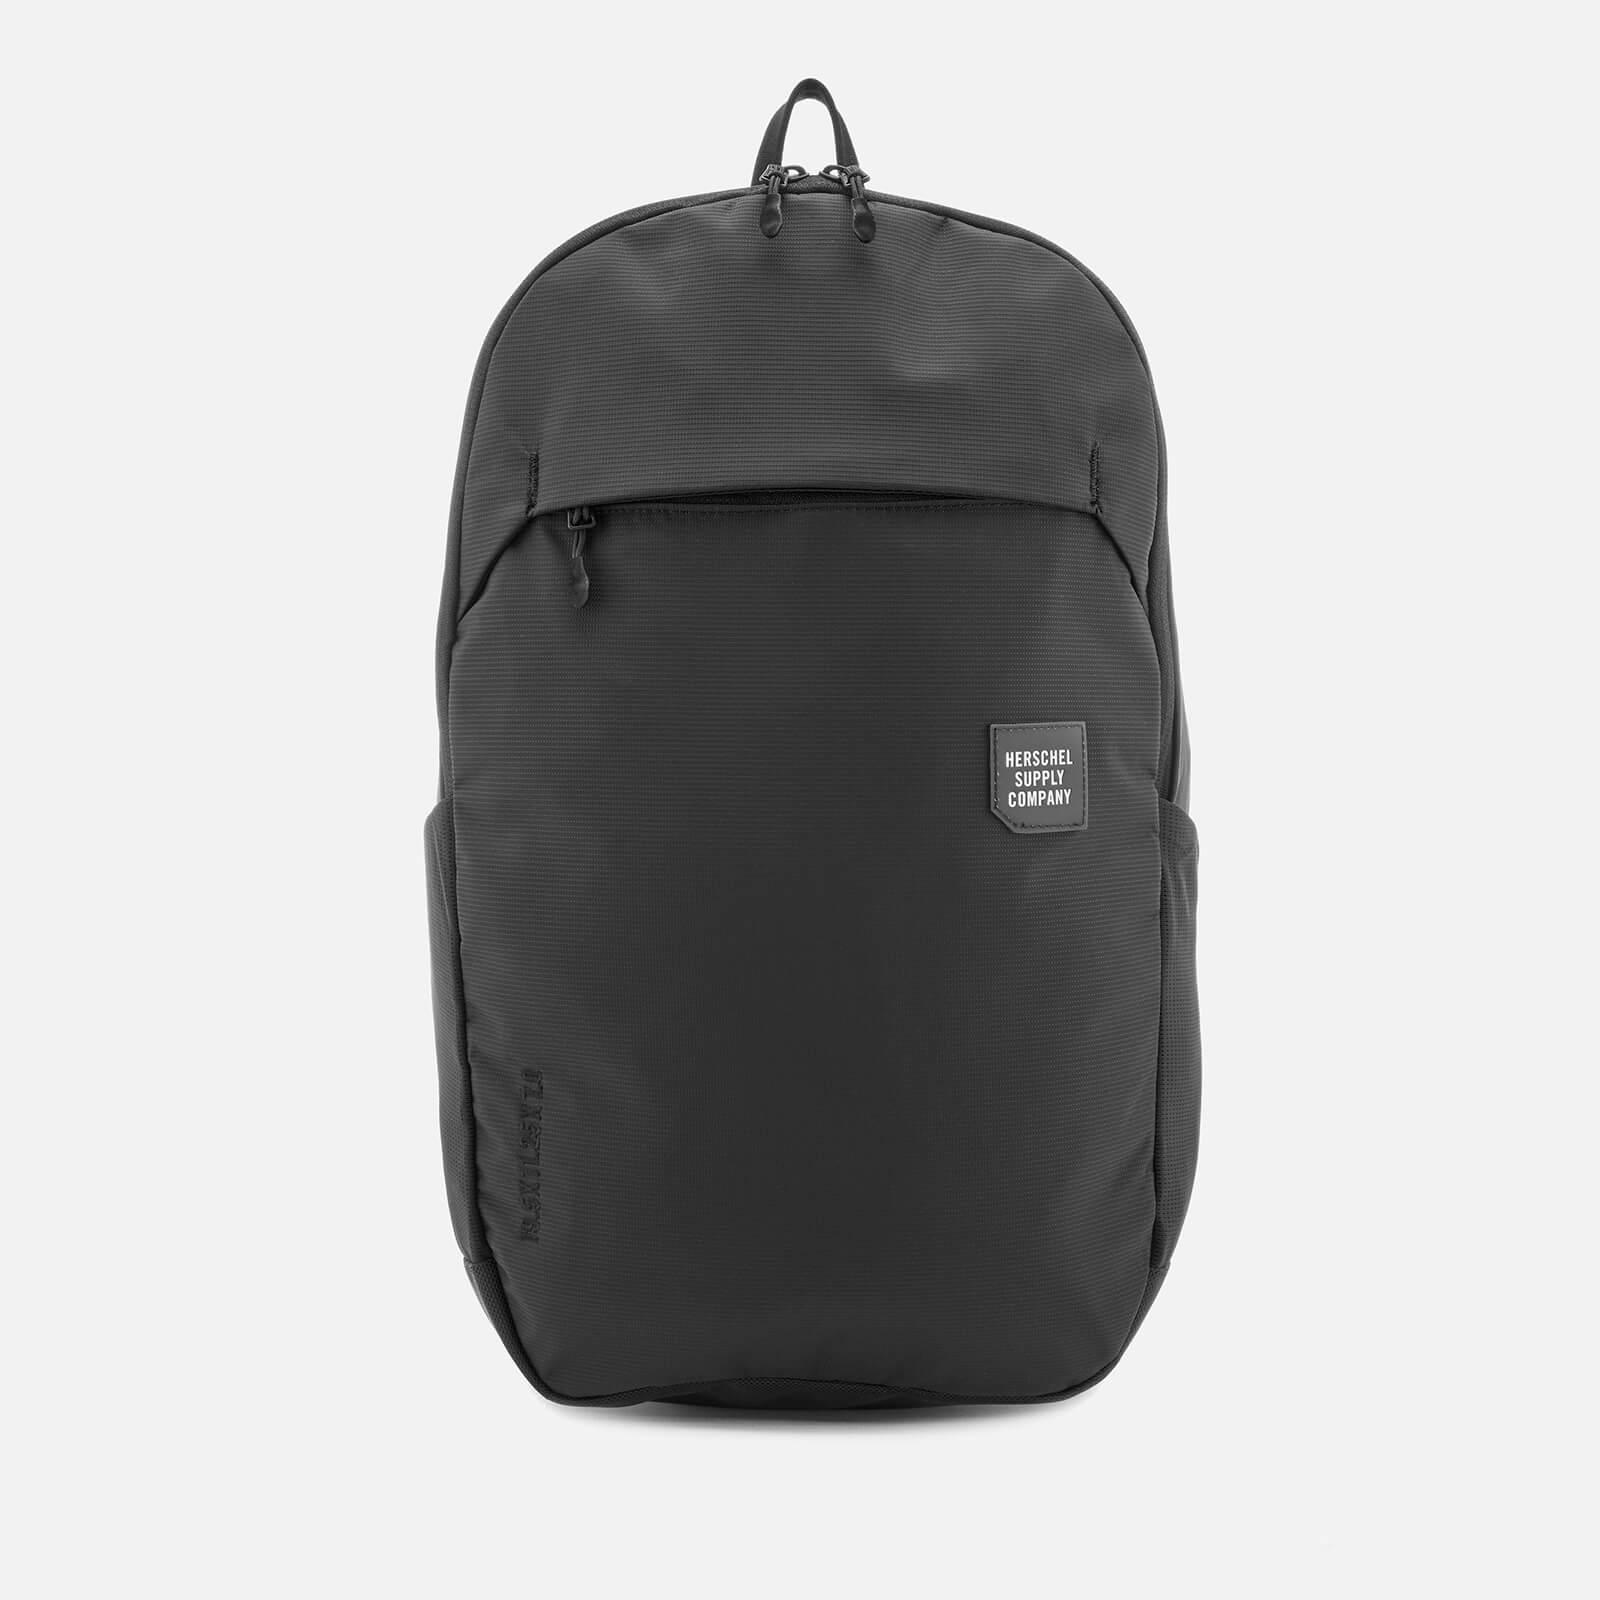 Lyst - Herschel Supply Co. Trail Mammoth Large Backpack in Black for Men d2e8150fd93a0